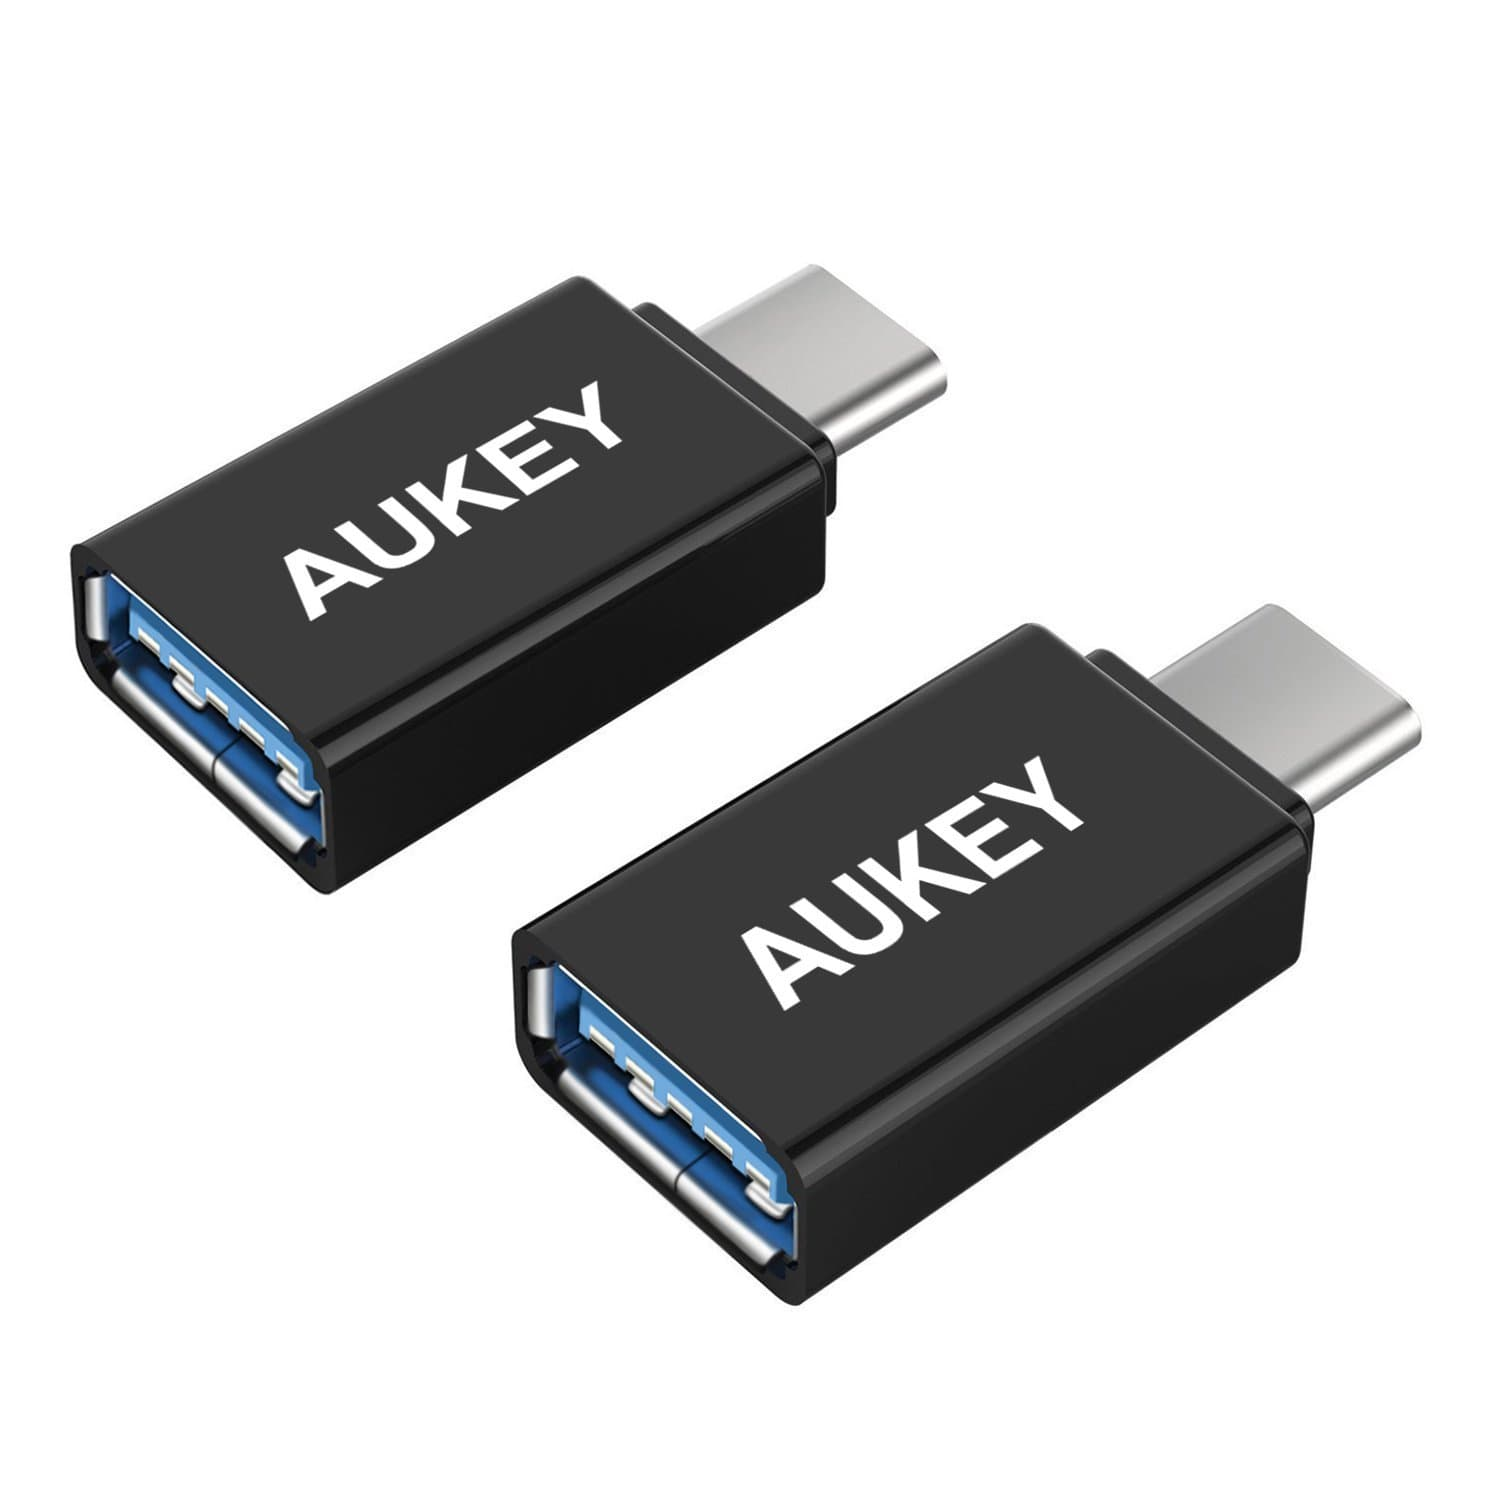 AUKEY CB-A1 USB 3.0 A to C Adapter (2 Pack) - Aukey Malaysia Official Store